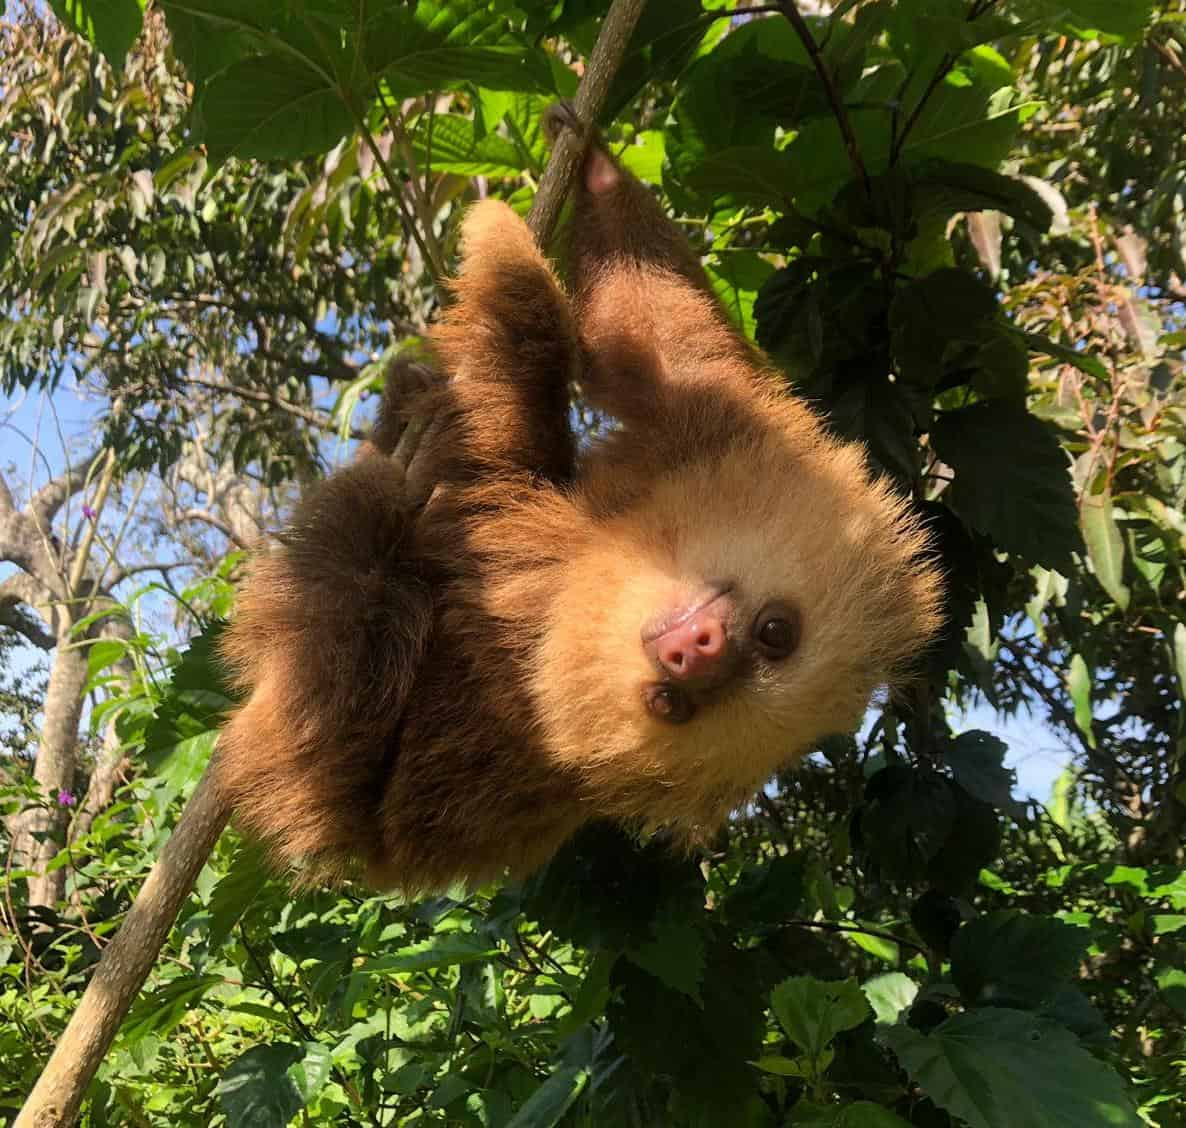 Sloth at Toucan Rescue Ranch